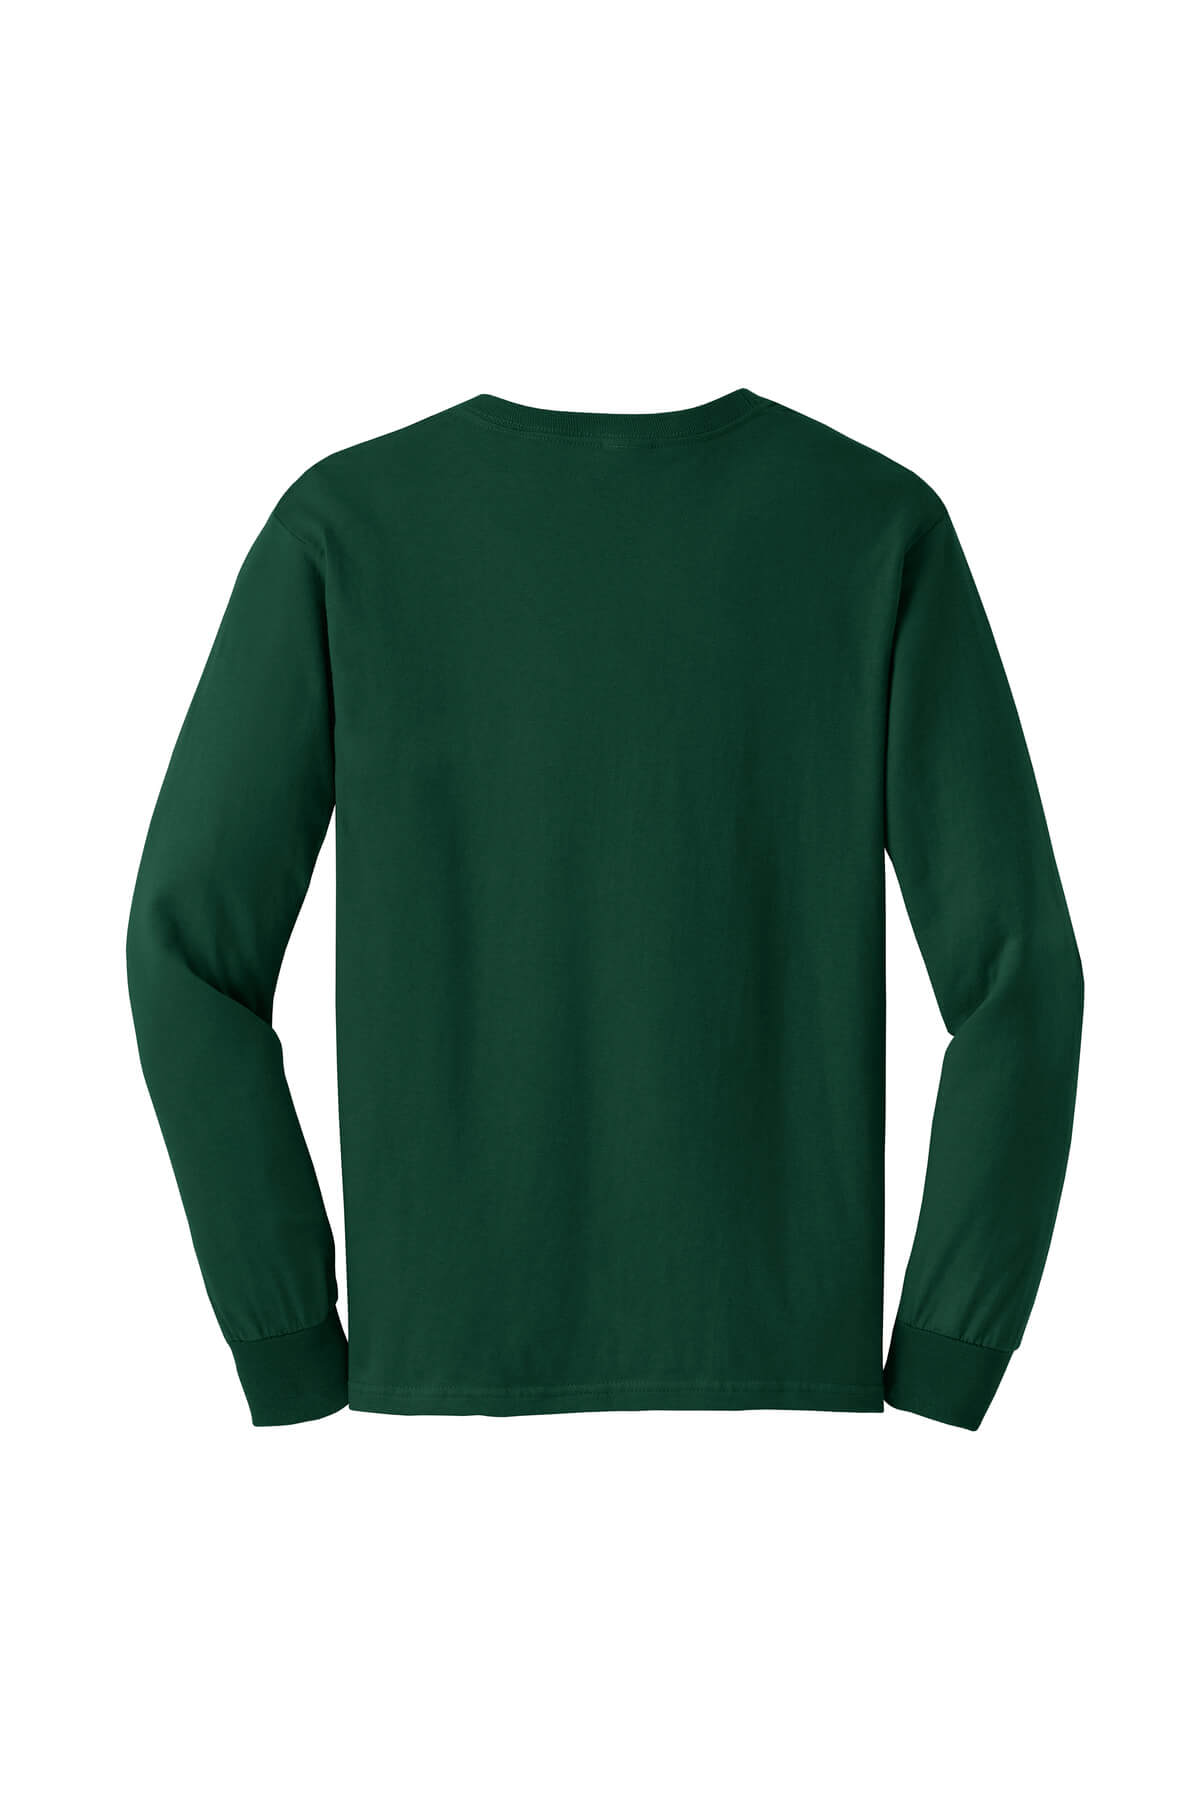 g2400-forest-green-6